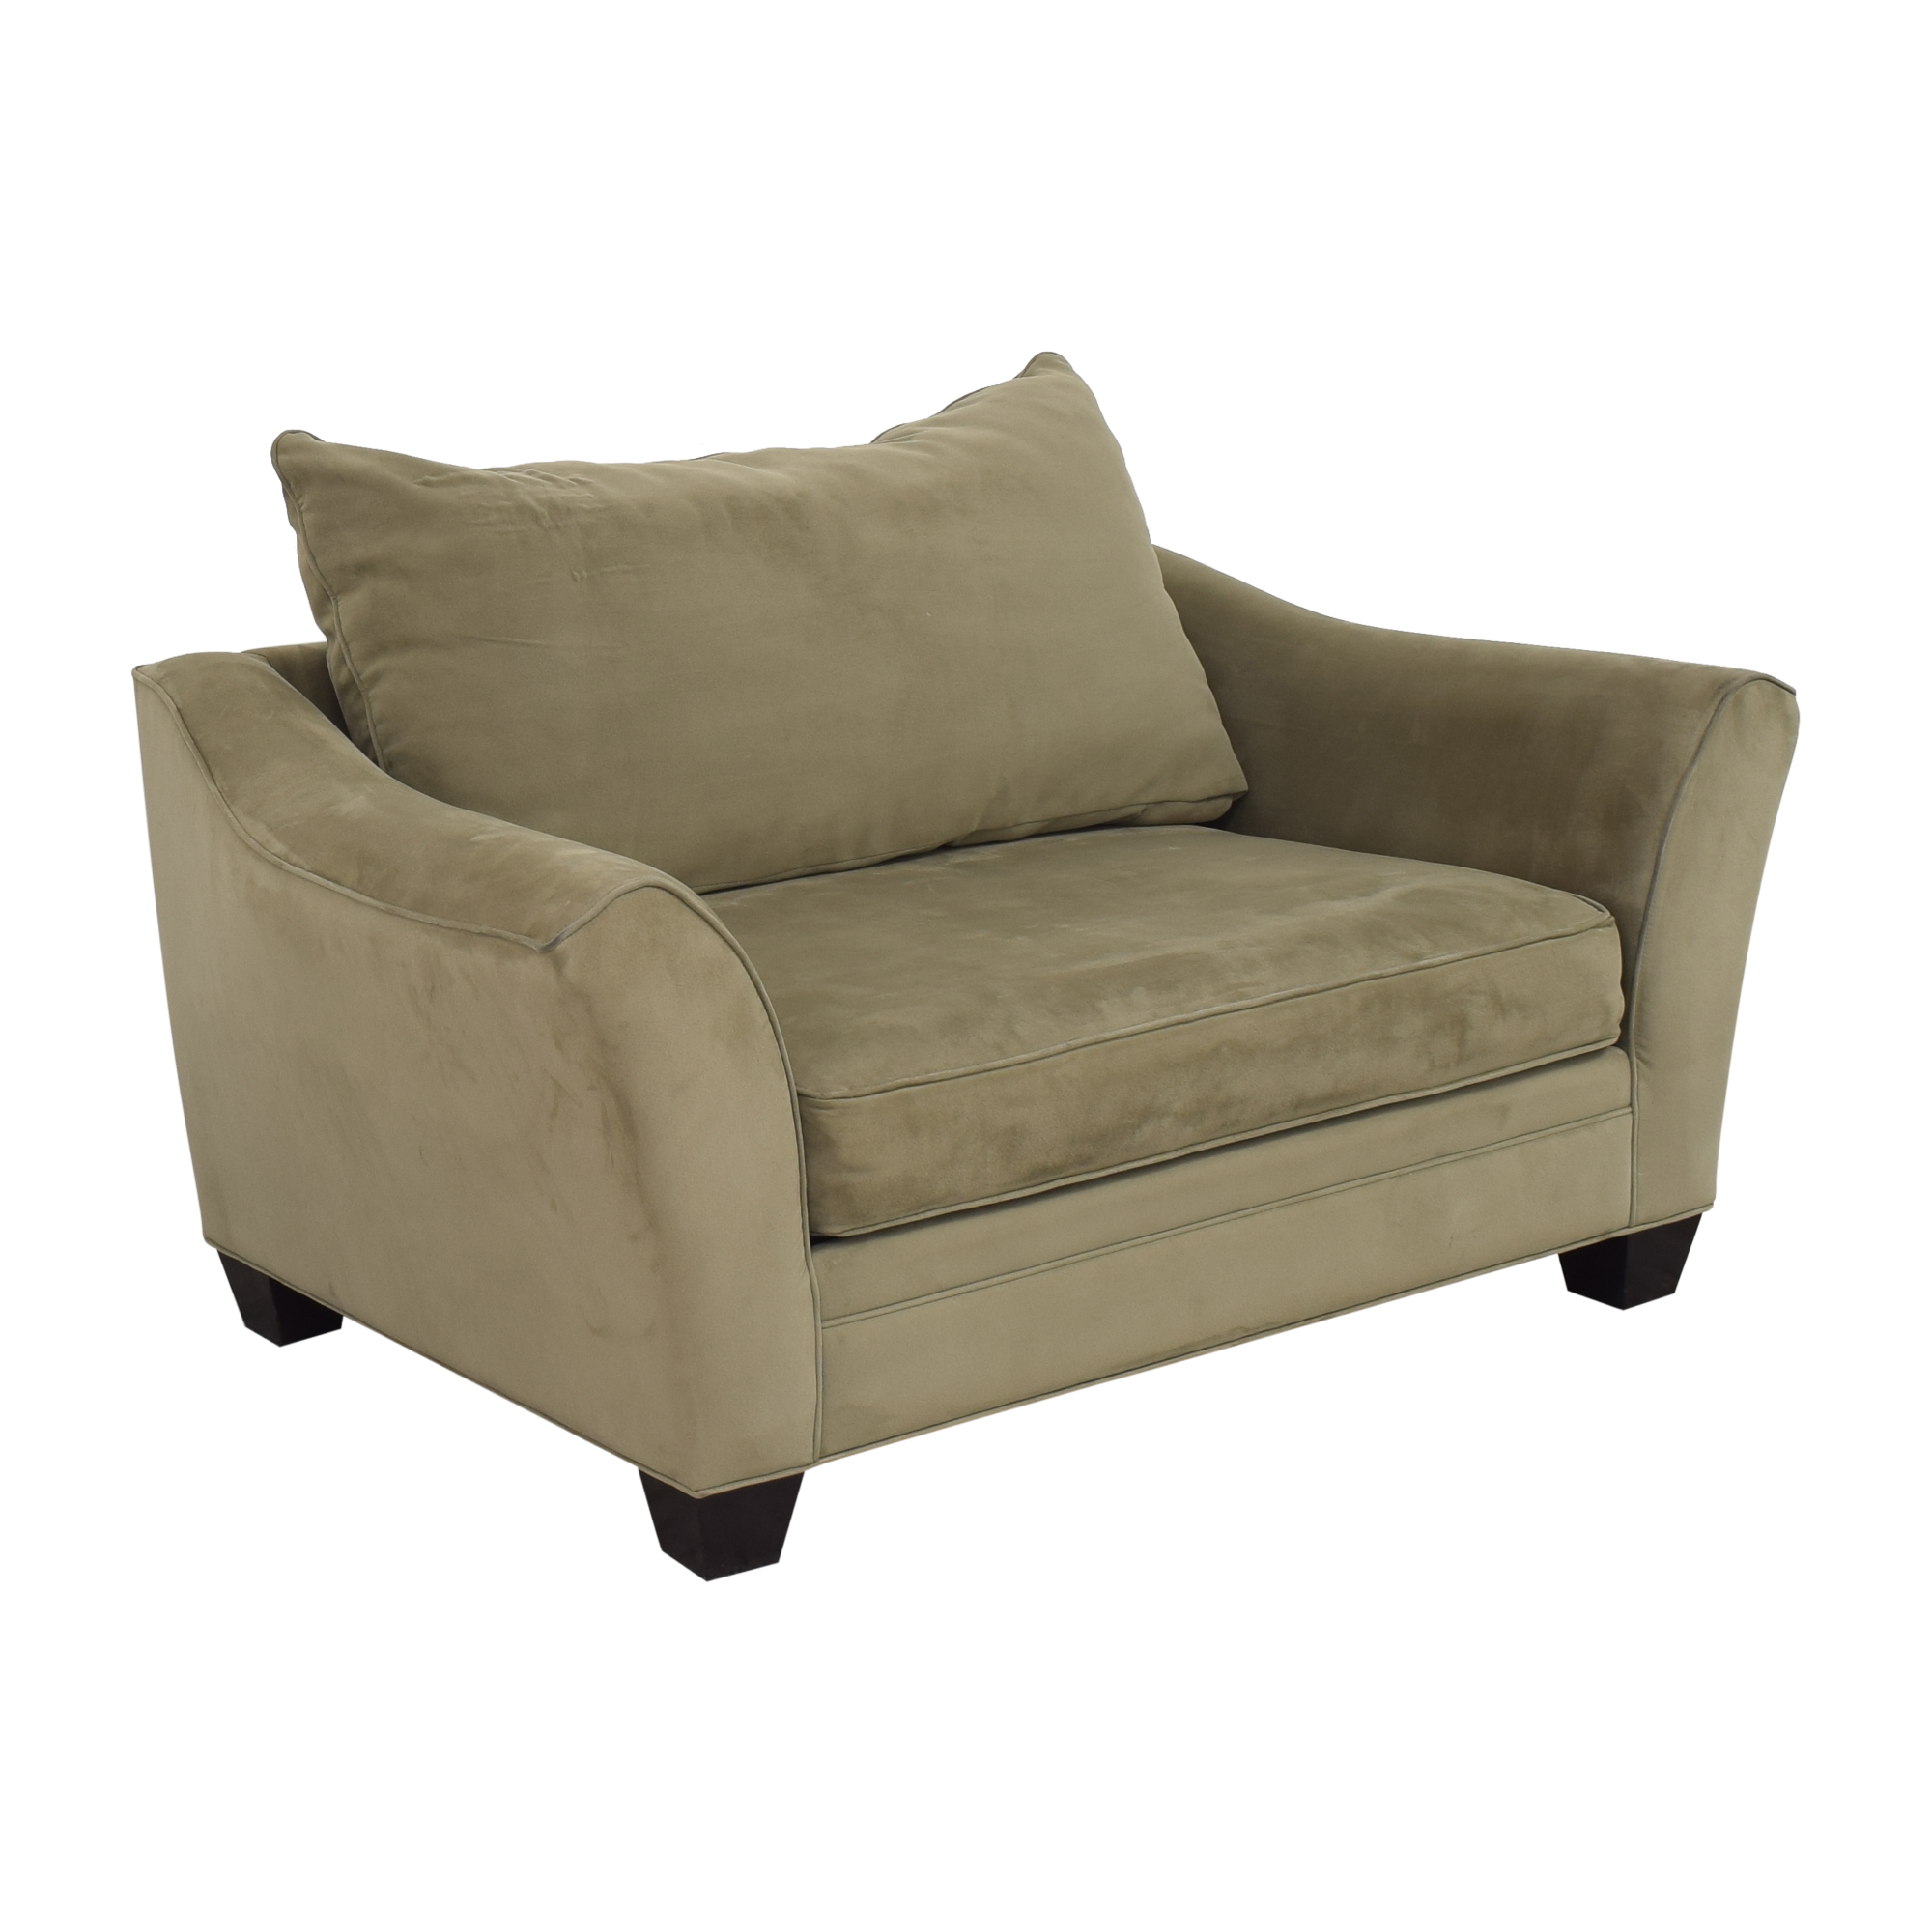 Raymour & Flanigan Raymour & Flanigan Bench Cushion Loveseat discount